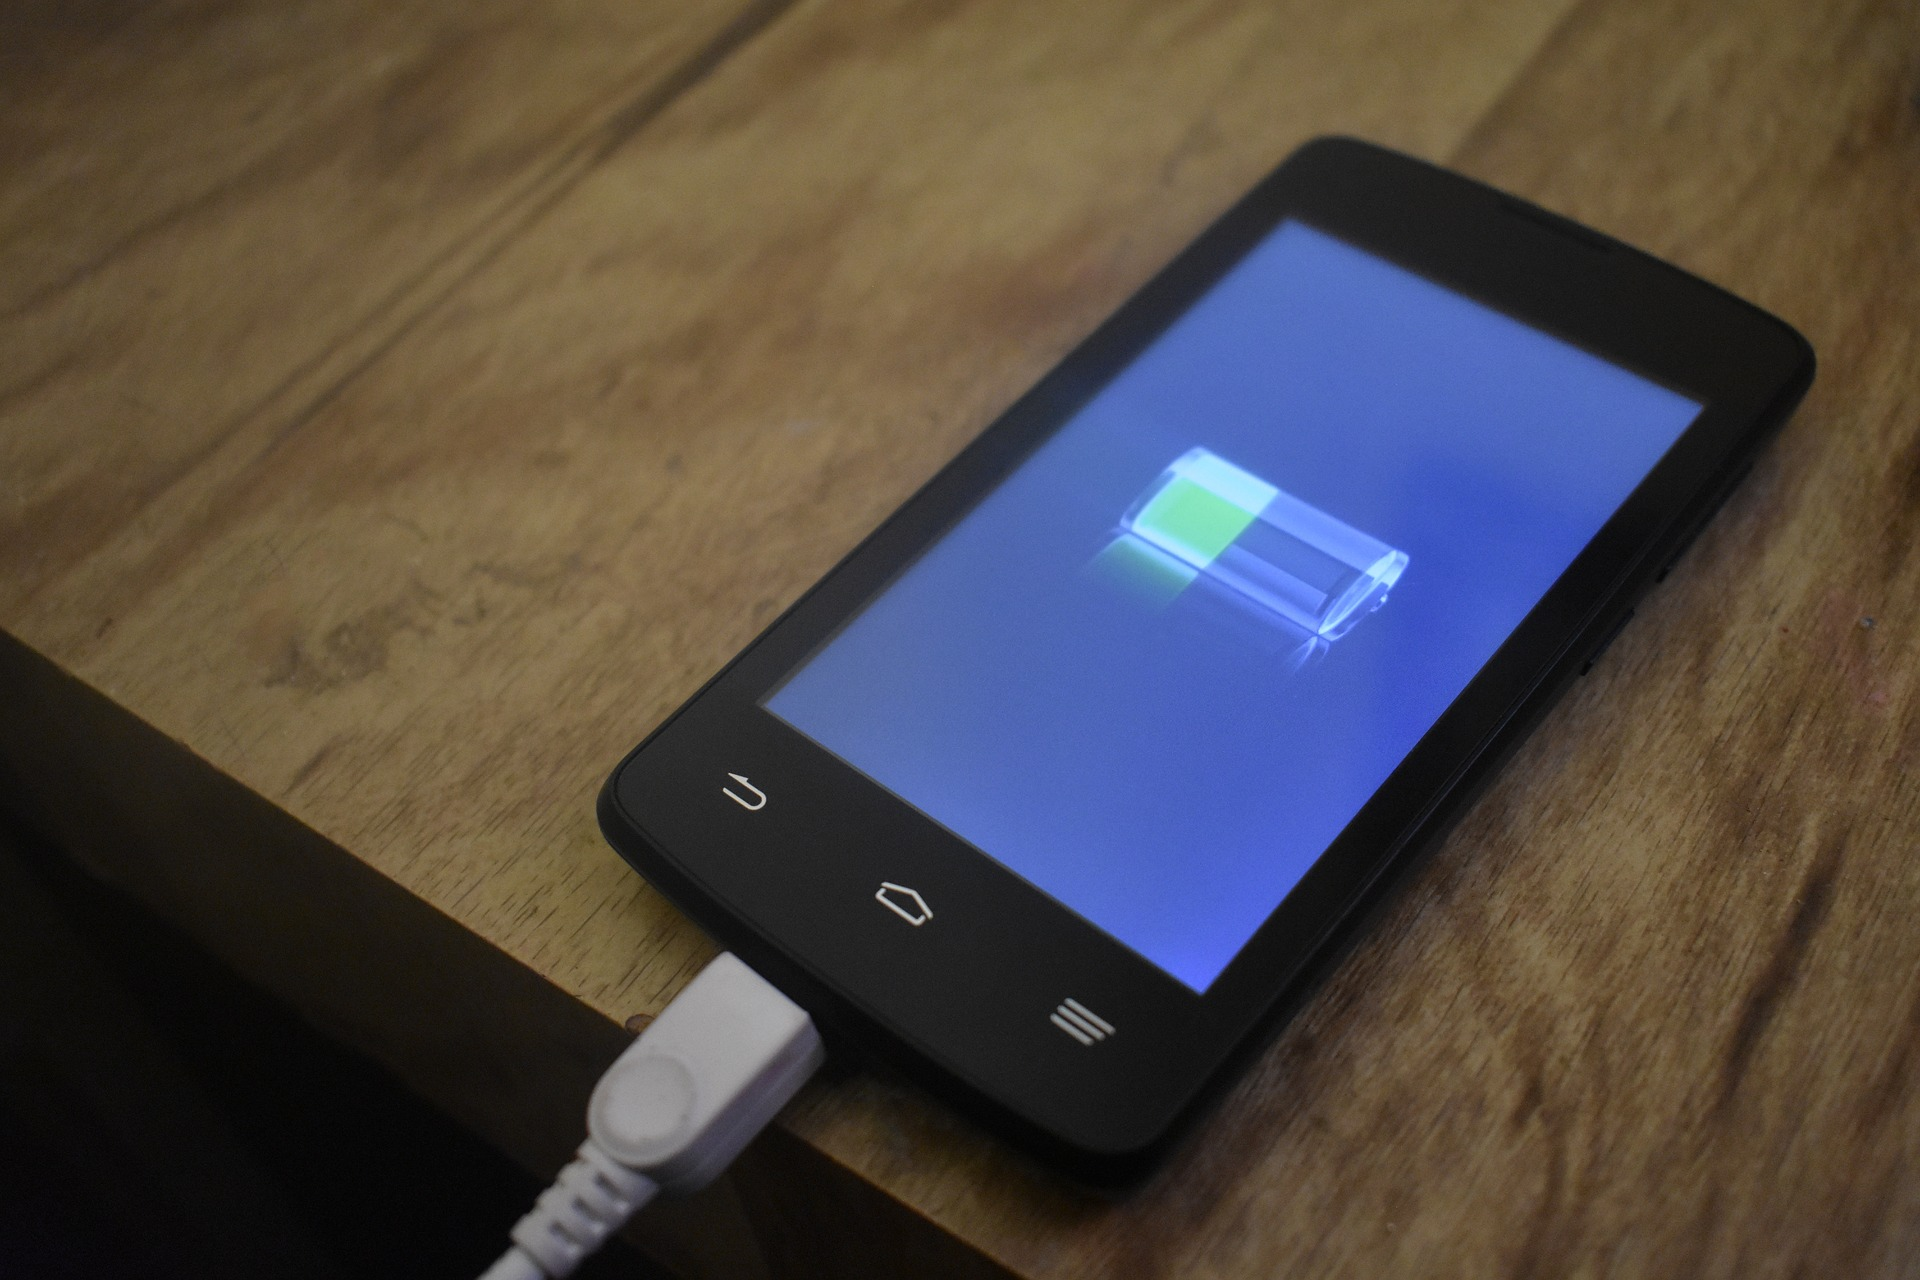 how to charge your phone faster - Avoid checking the battery level